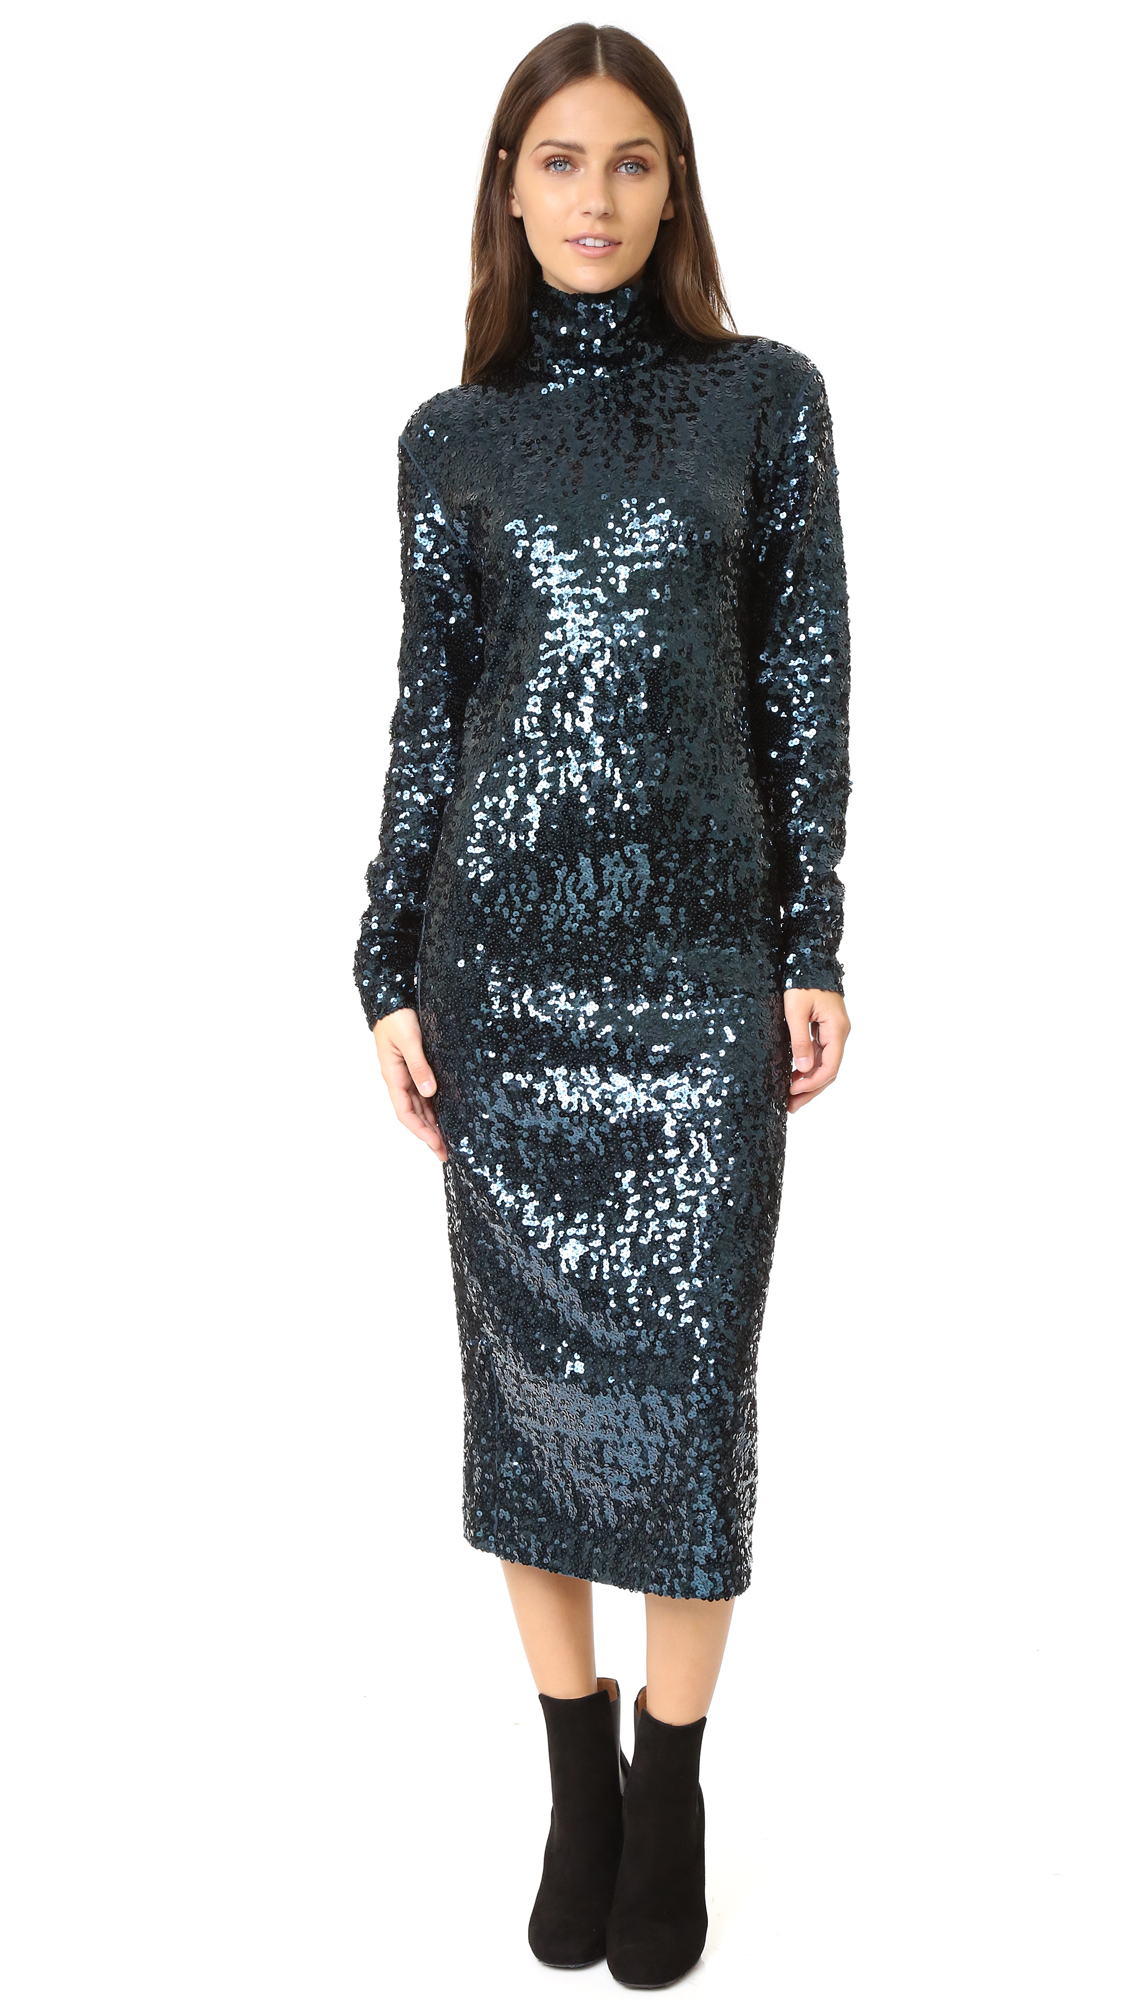 A formfitting By Malene Birger turtleneck dress, covered with eye catching sequins. Long sleeves. Hidden back zip. Lined. Fabric: Sequined jersey. Shell: 95% cotton/5% elastane. Trim: 100% polyester. Lining: 100% viscose. Hand wash. Imported, China. Measurements Length: 46.5in / 118cm,